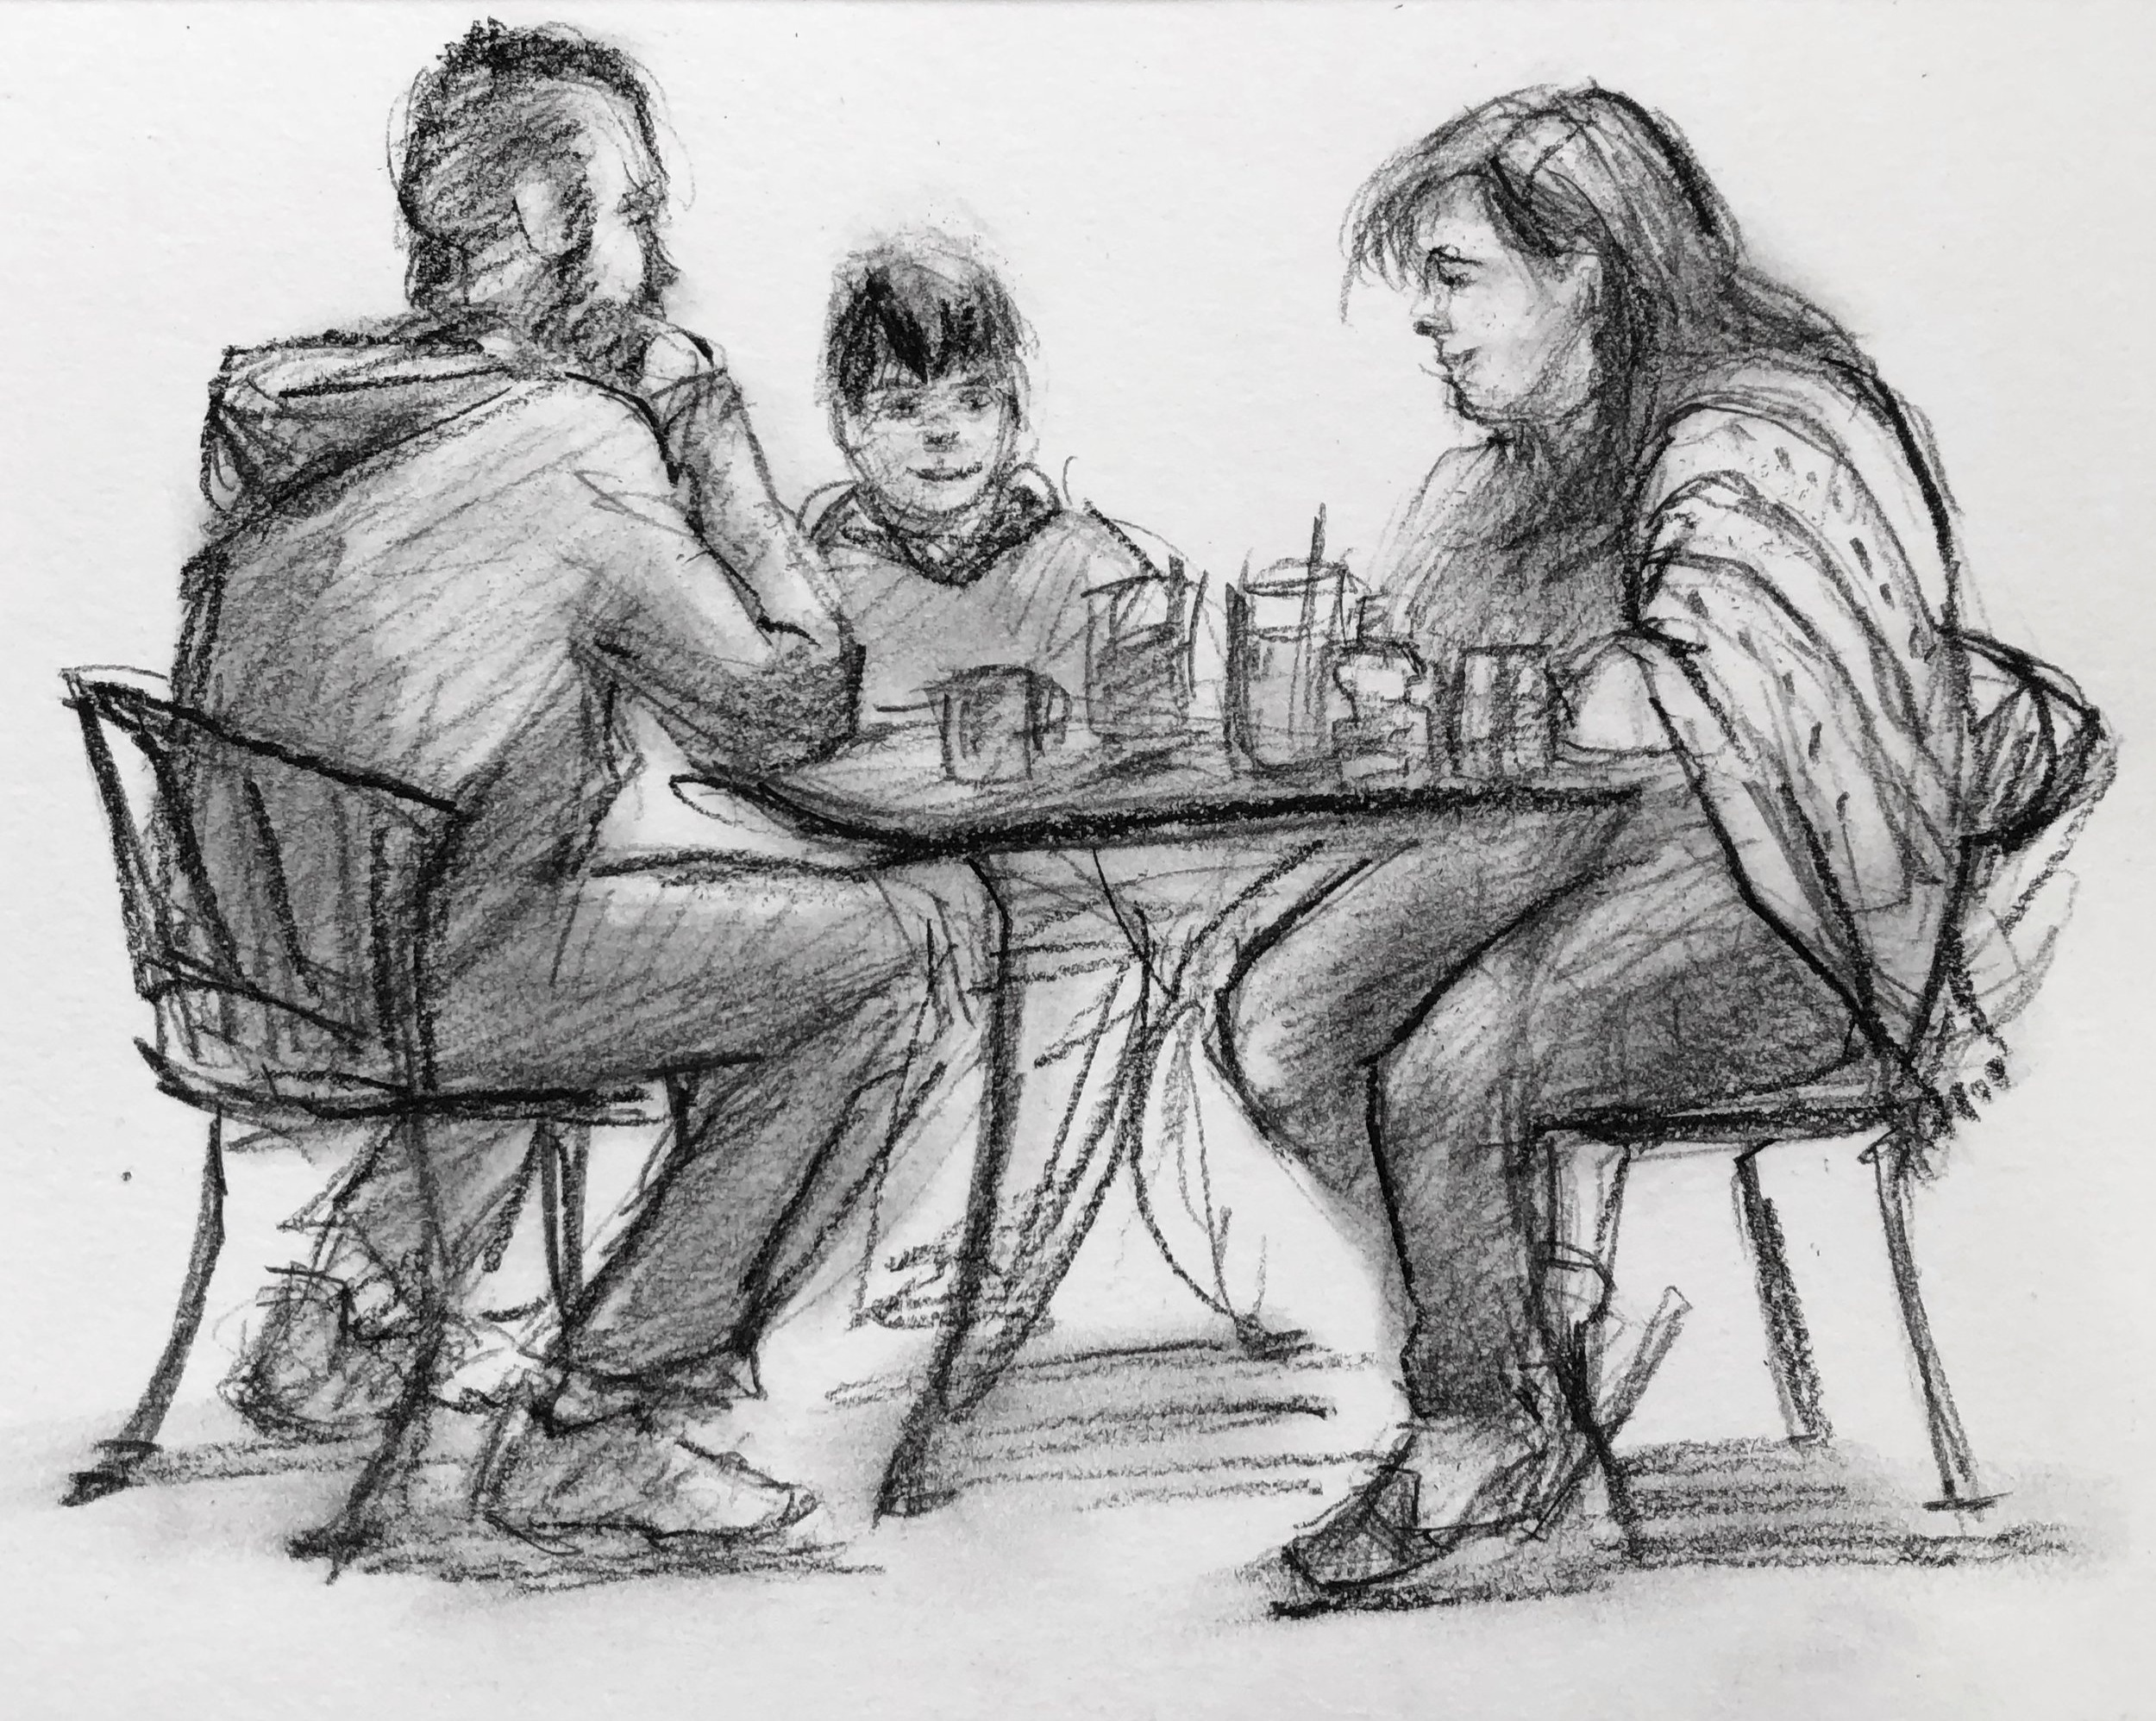 Yet another sketch of innocent diners at Christo's. This family was actually talking together instead of being on their phones.